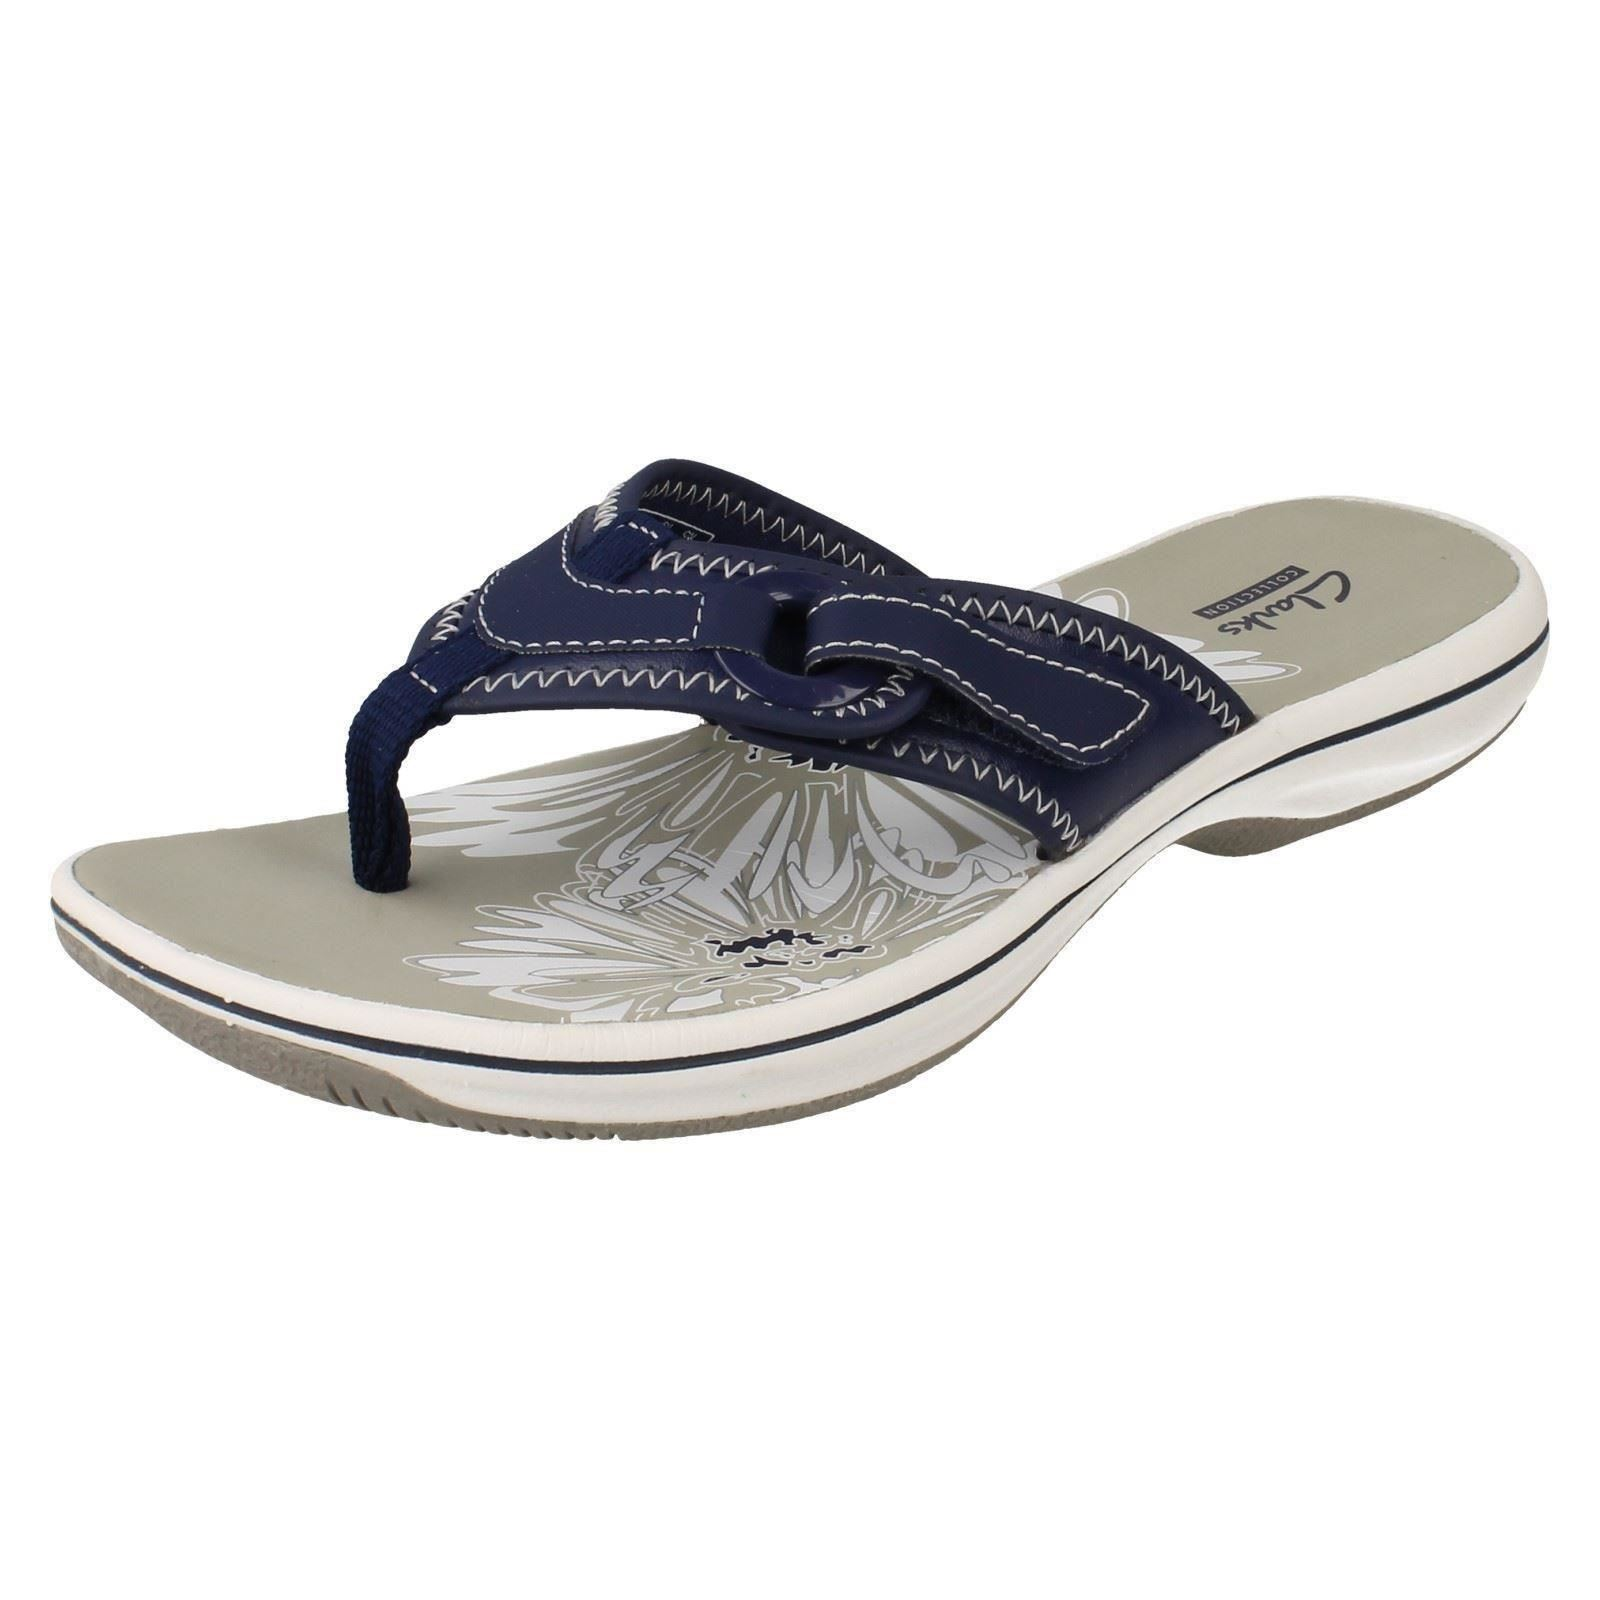 Clarks Shoes White Sandals